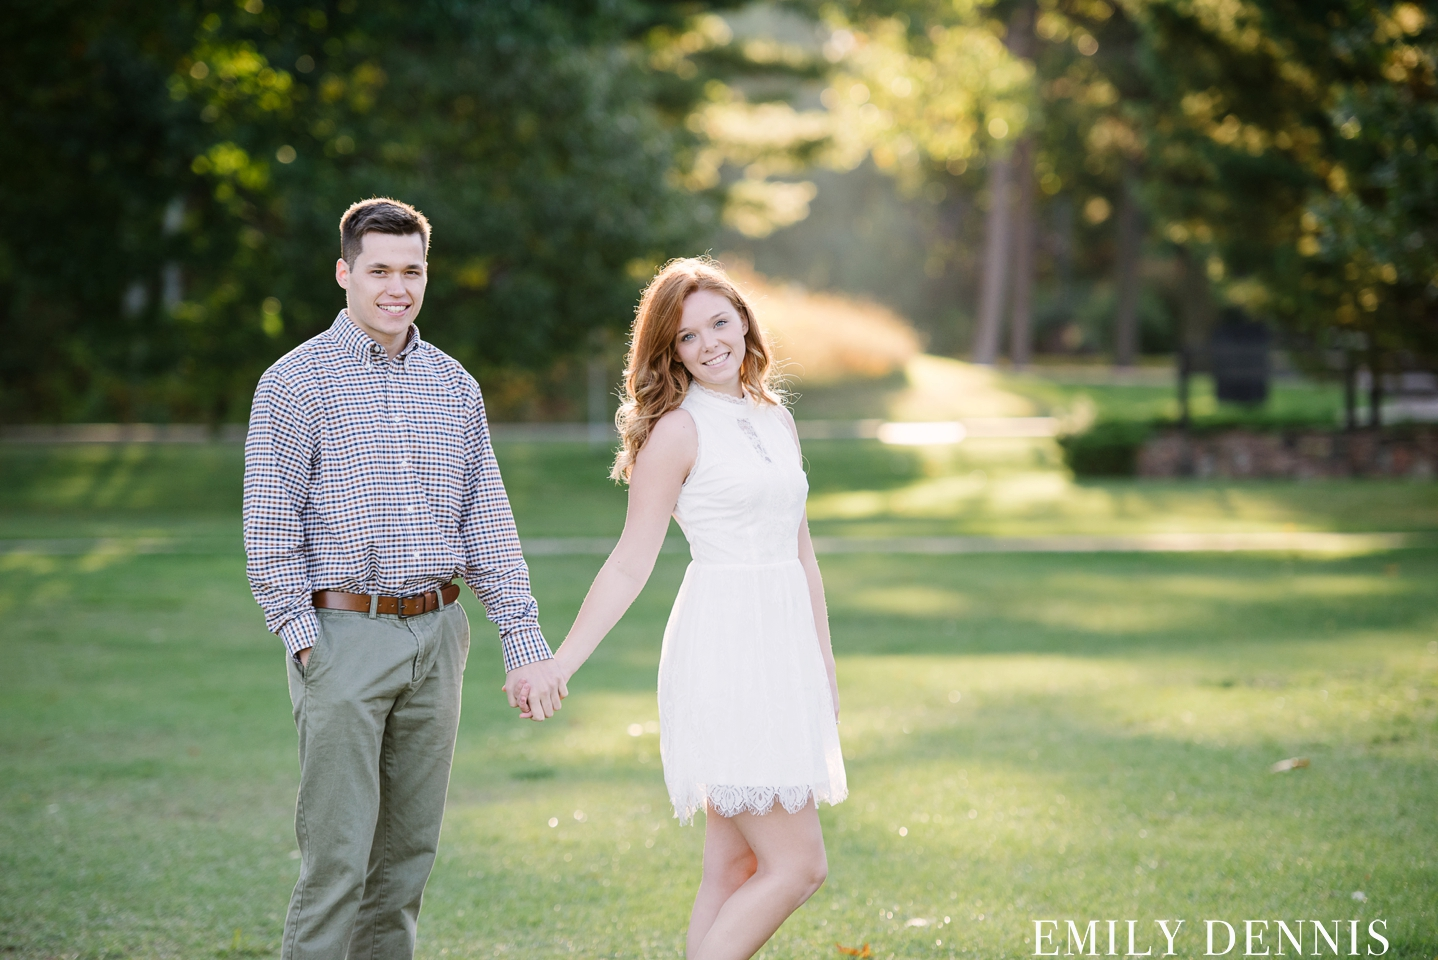 emilydennisphotography_3580